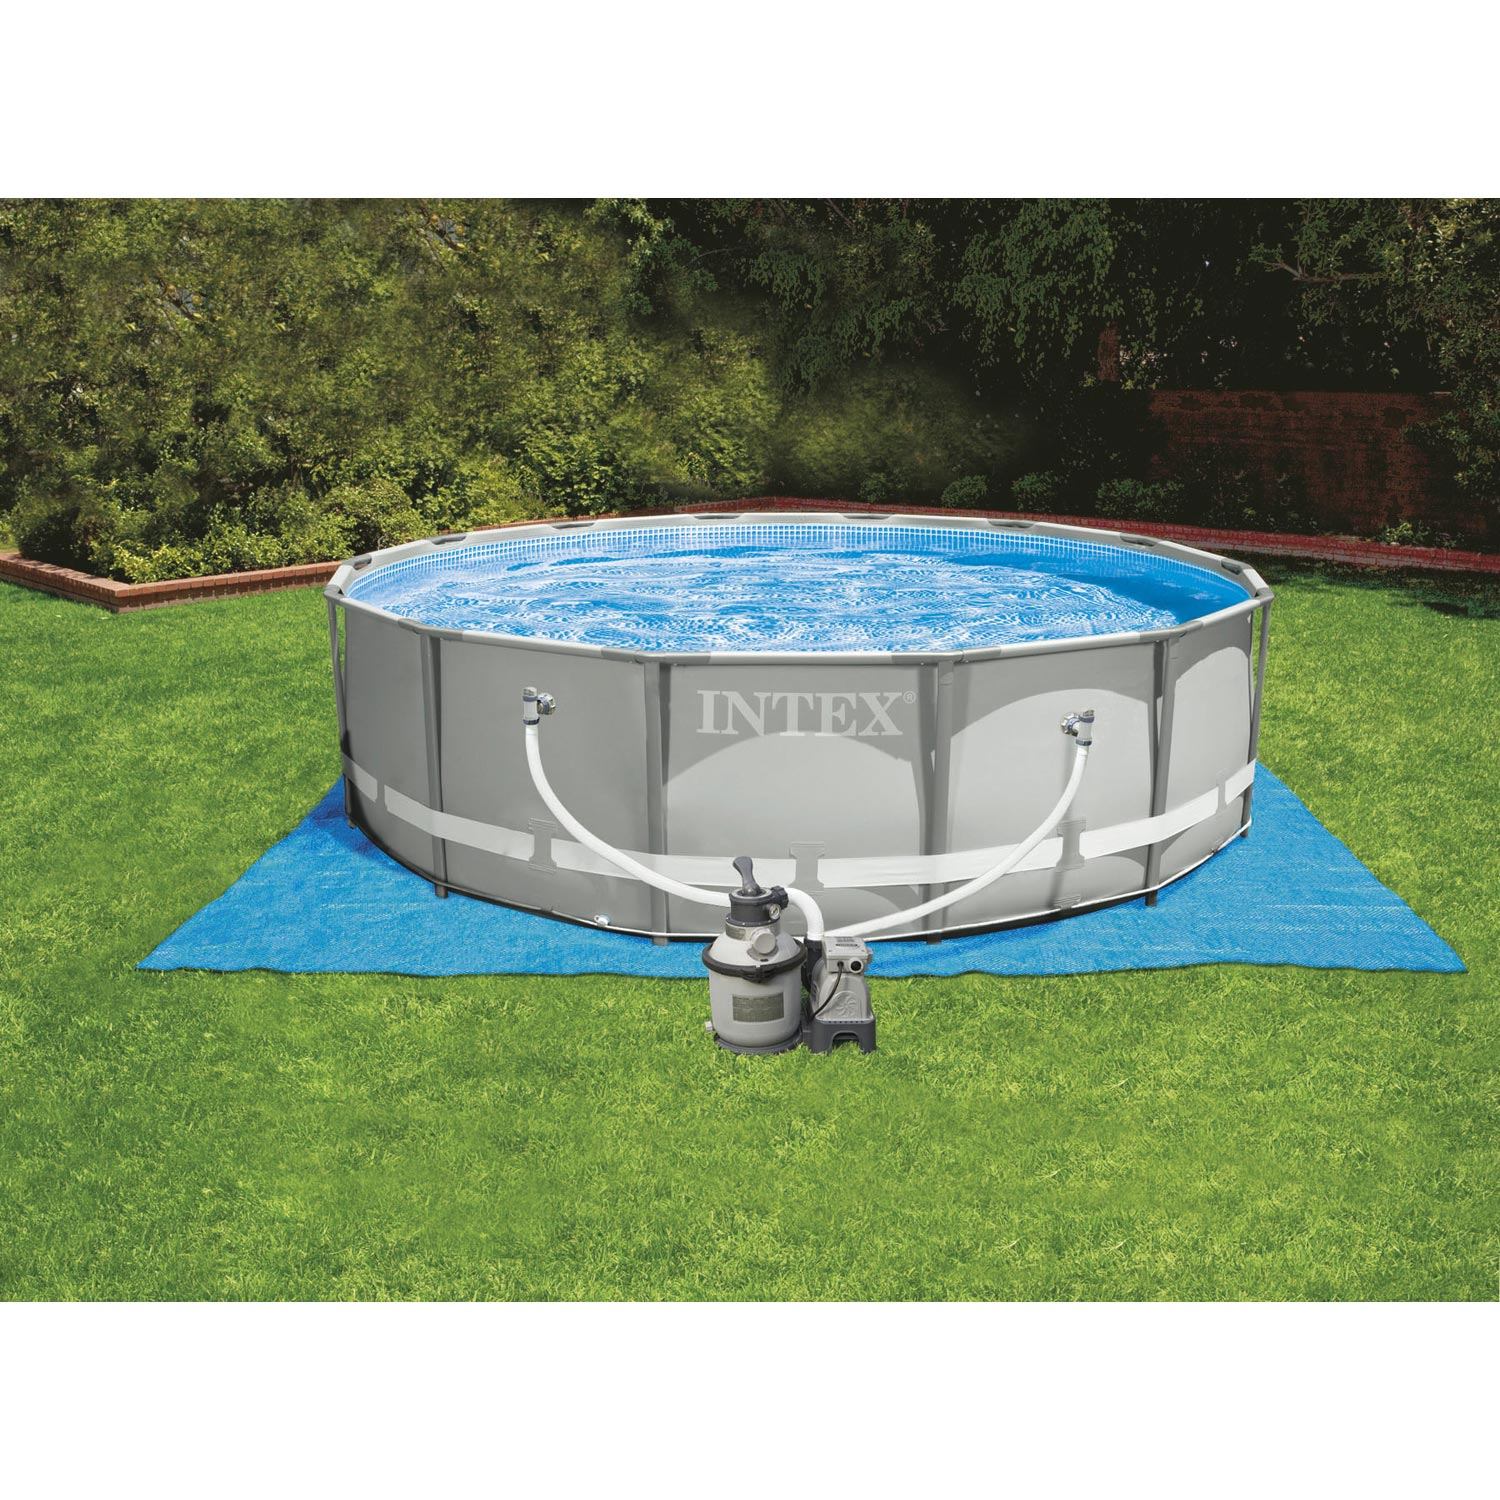 Piscine hors sol autoportante tubulaire ultra frame intex for Piscine demontable hors sol